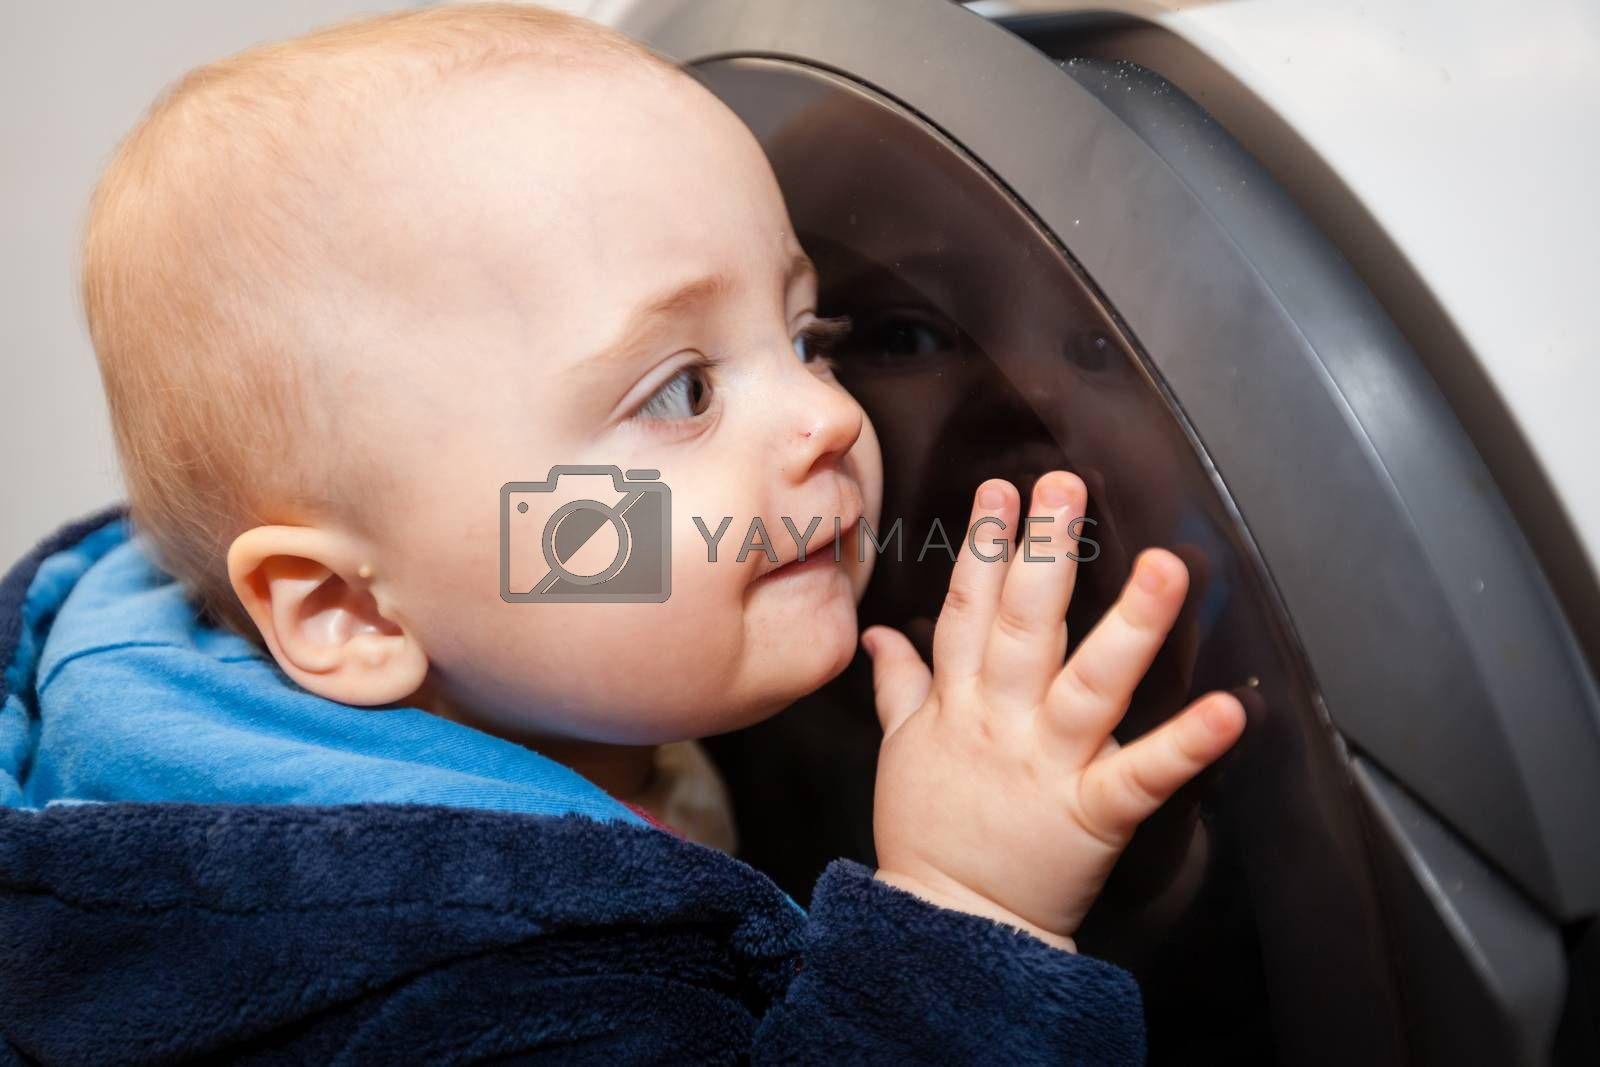 Portrait of a cute little baby boy looking with fascination inside the washing machine